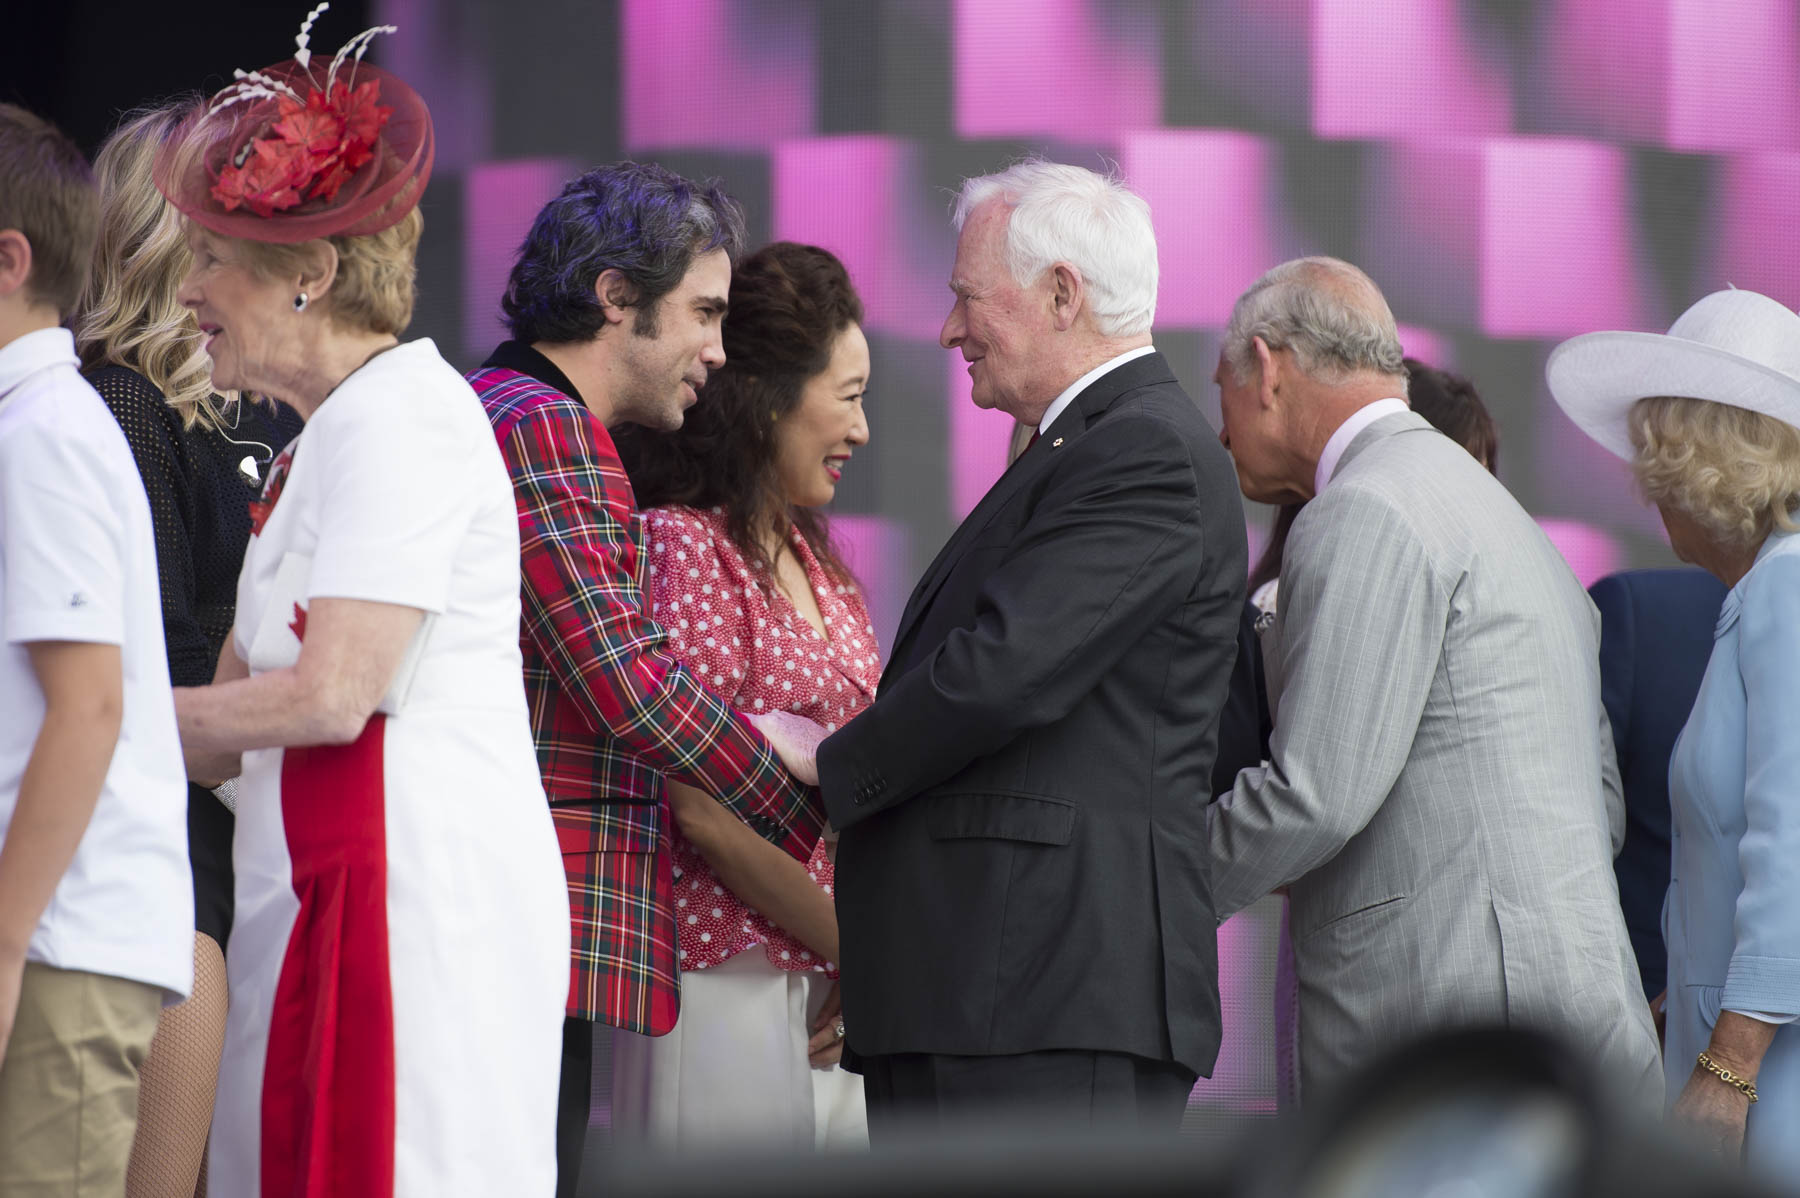 At the end of the show Their Excellencies and Their Royal Highnesses met with the performers.